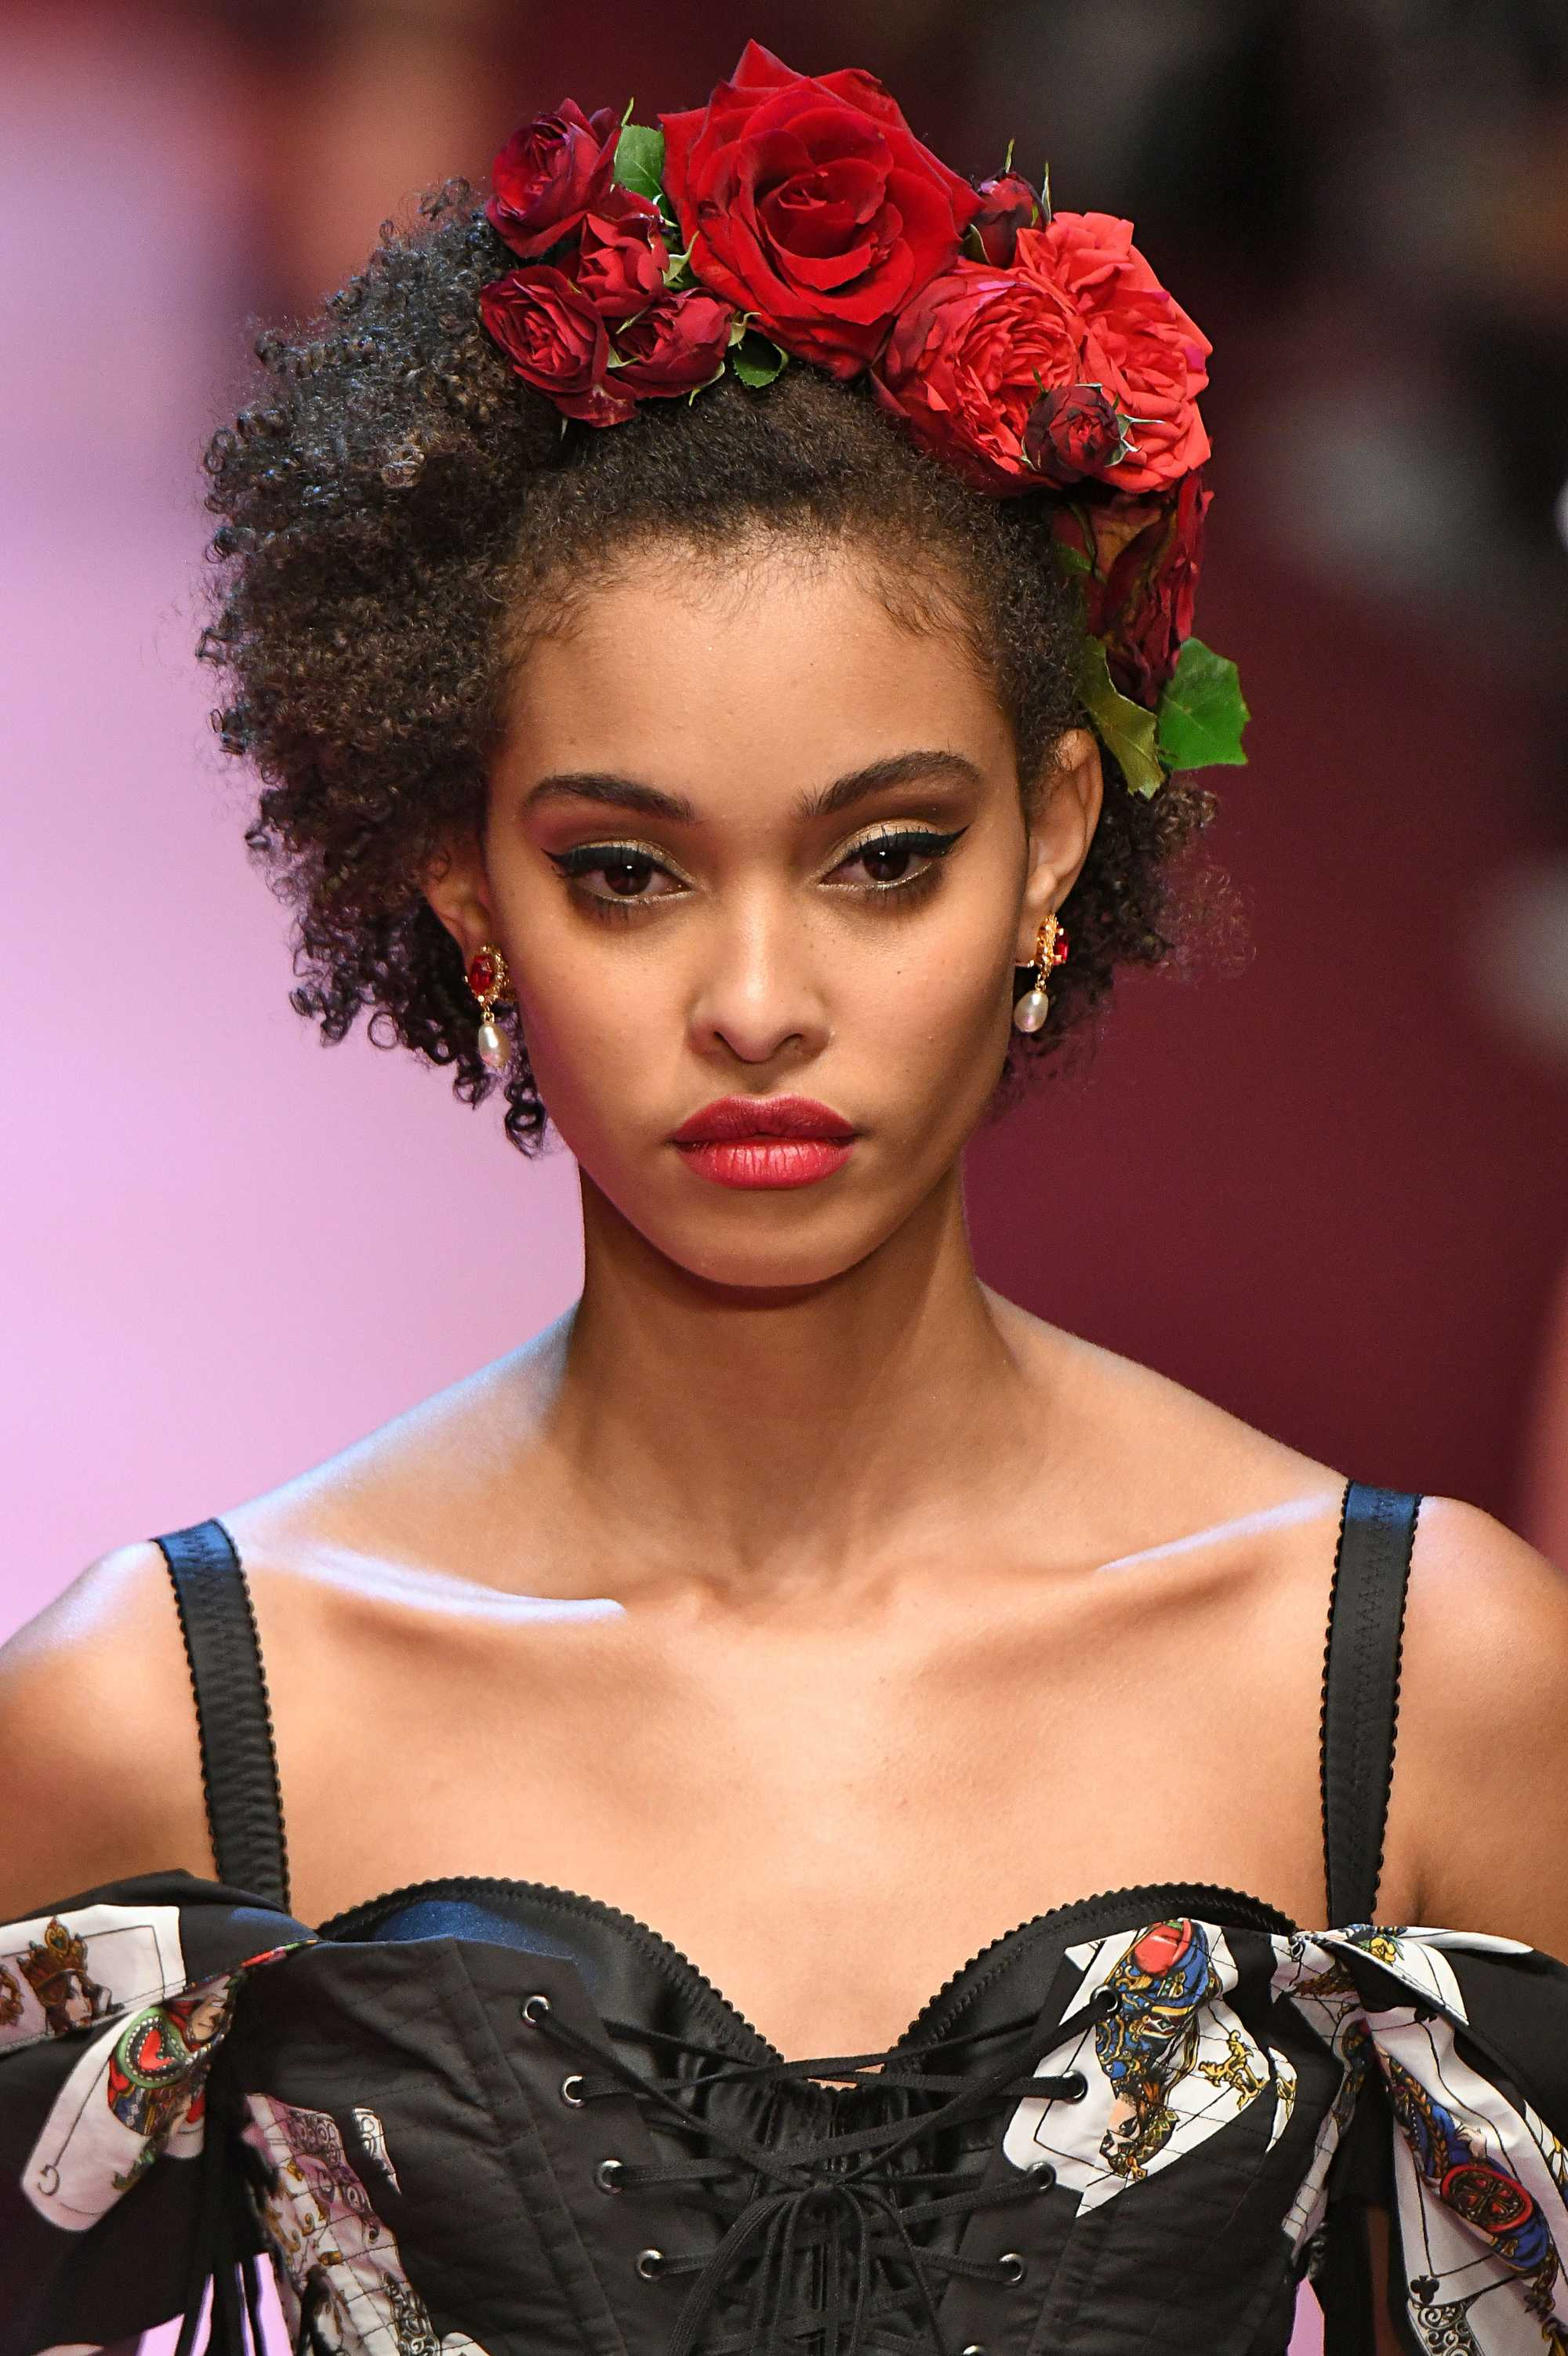 shot of model on the Dolce & Gabbana runway with flowers in her afro hair